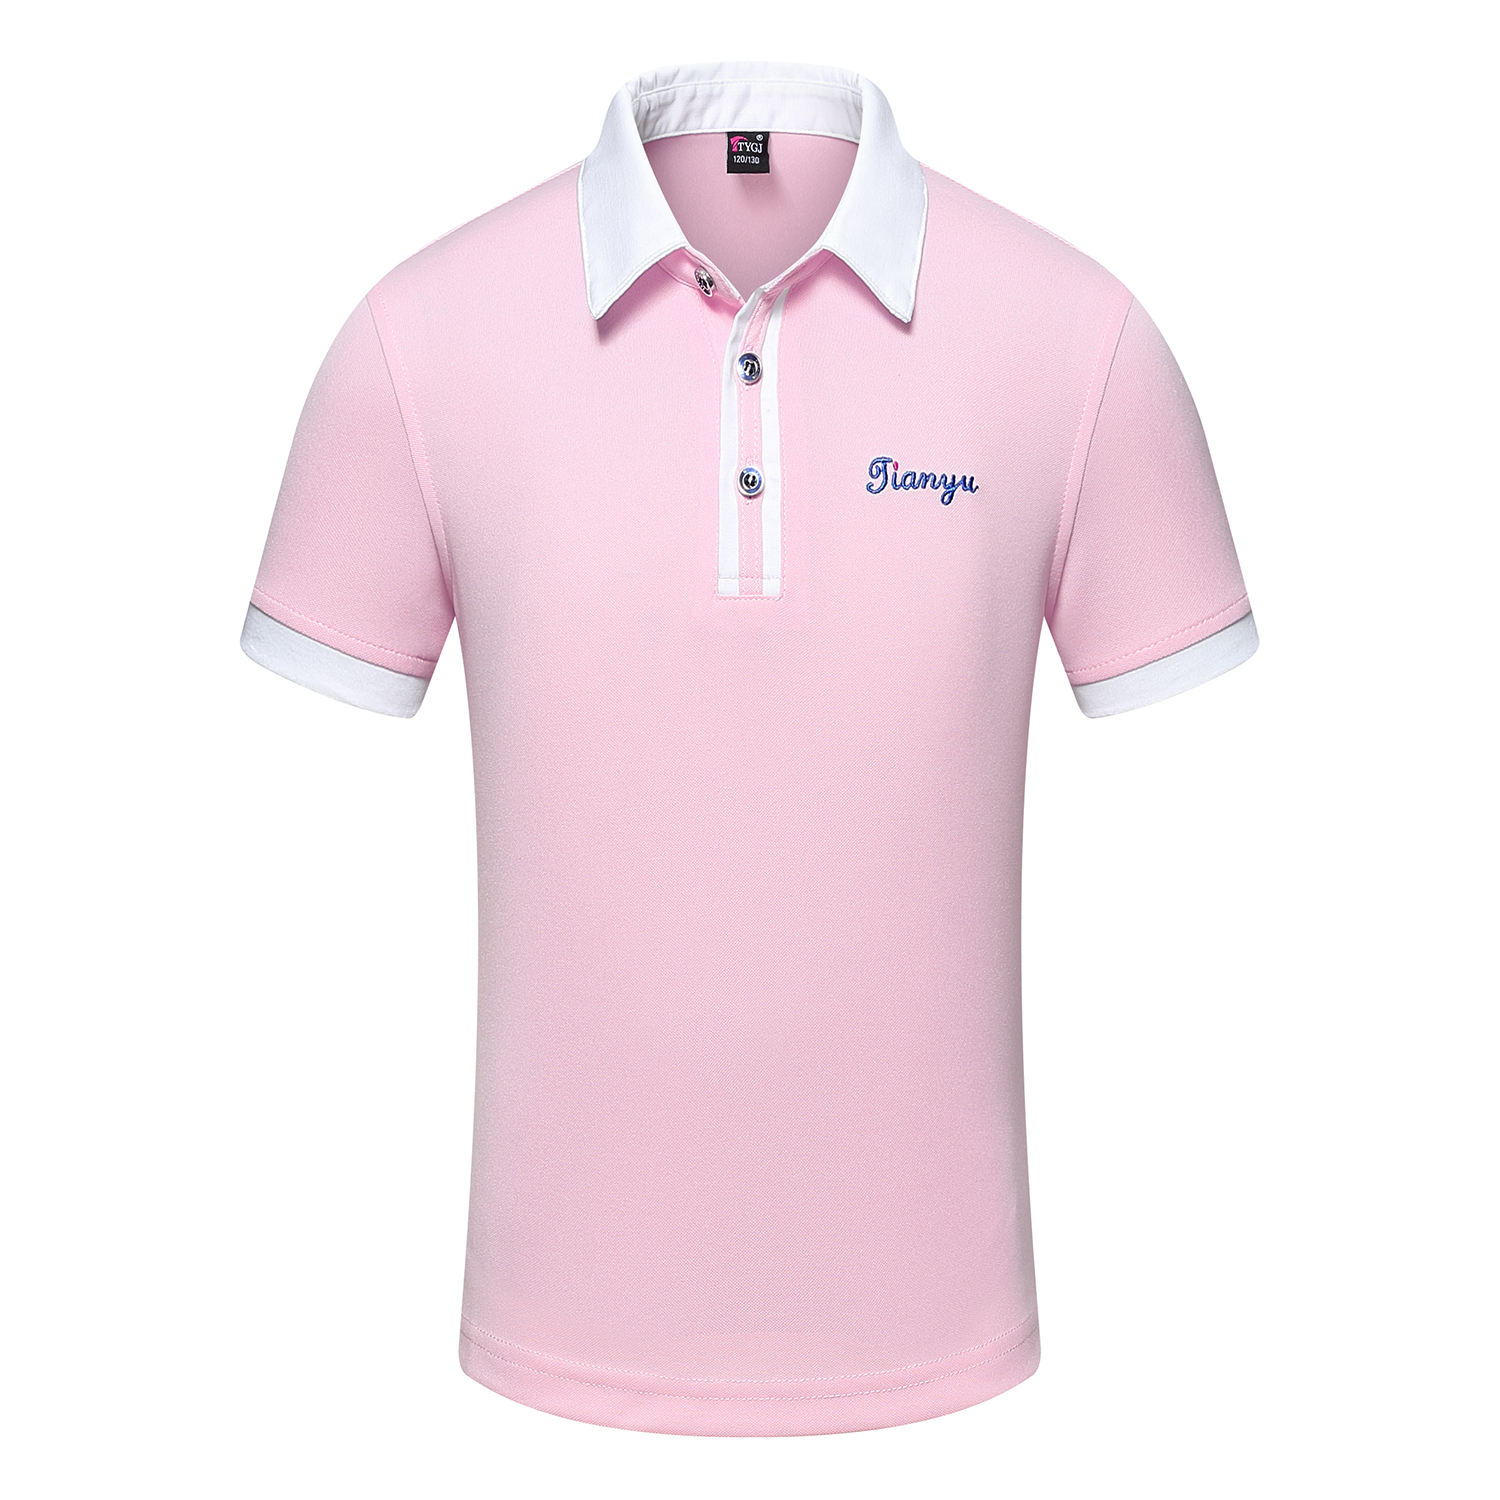 PINK POLO SHIRT FOR MEN AND WOMEN